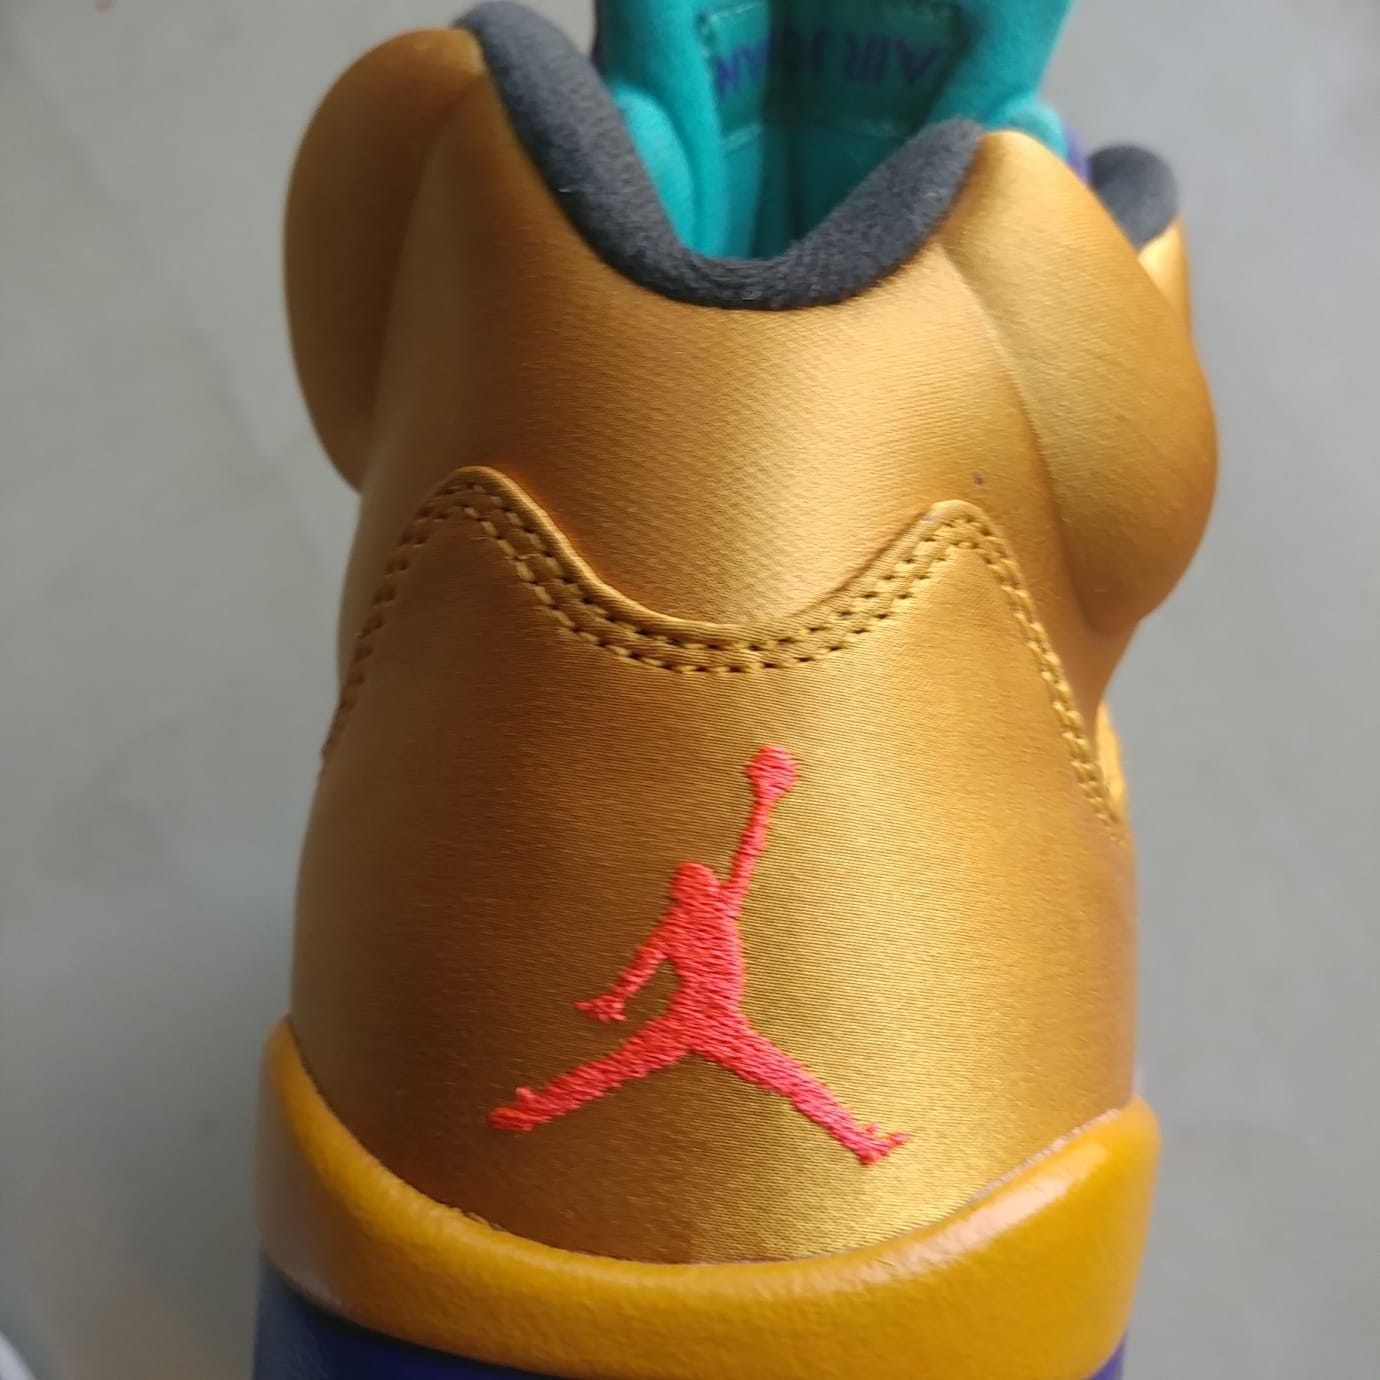 fee4964ce6d Image via Will Smith Air Jordan 5 NRG  Fresh Prince  Friends and Family  (Heel)